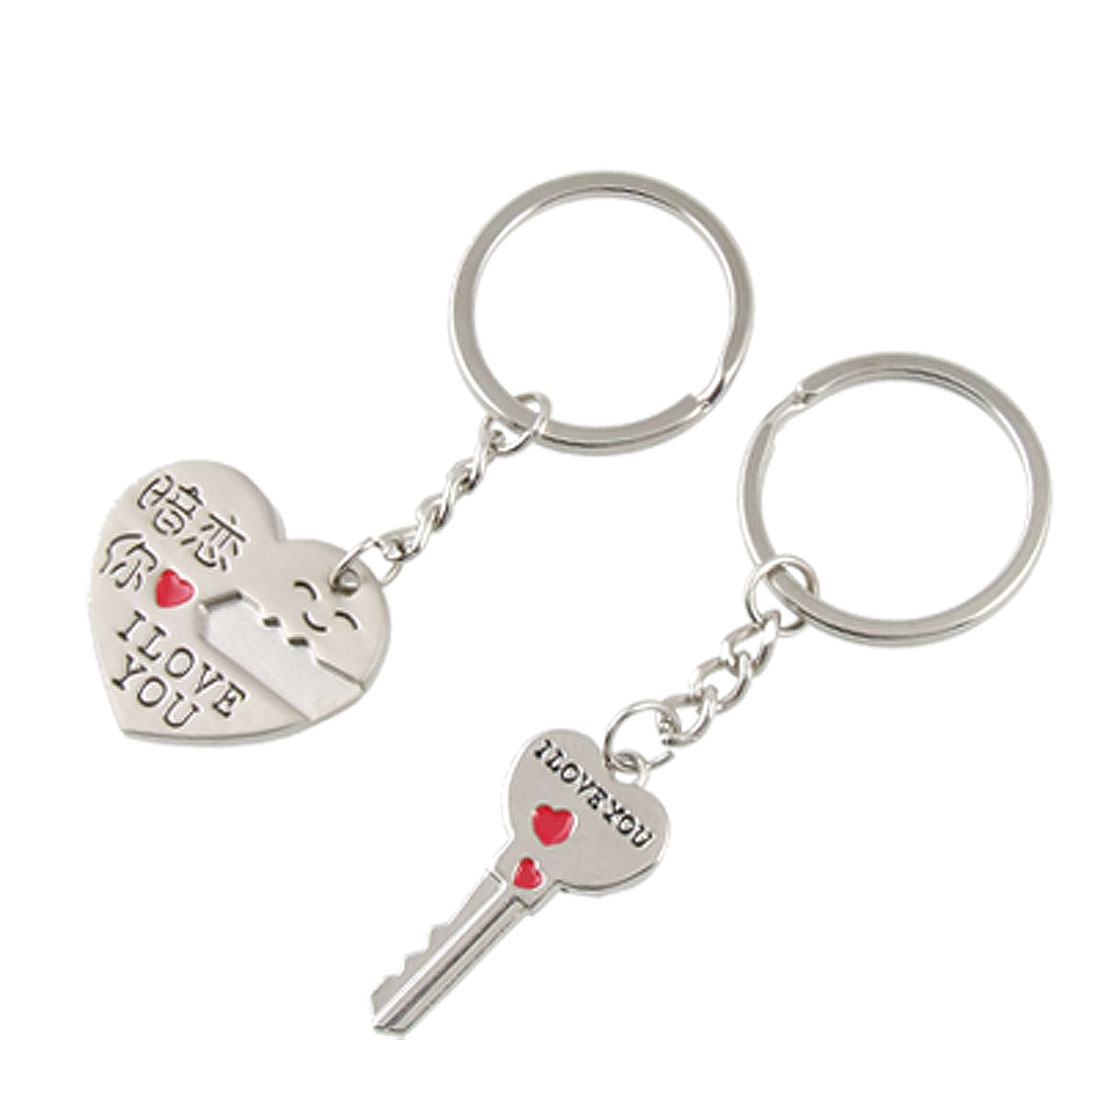 Pair Silver Tone Metal Heart Key Pendant Lovers Key Chains